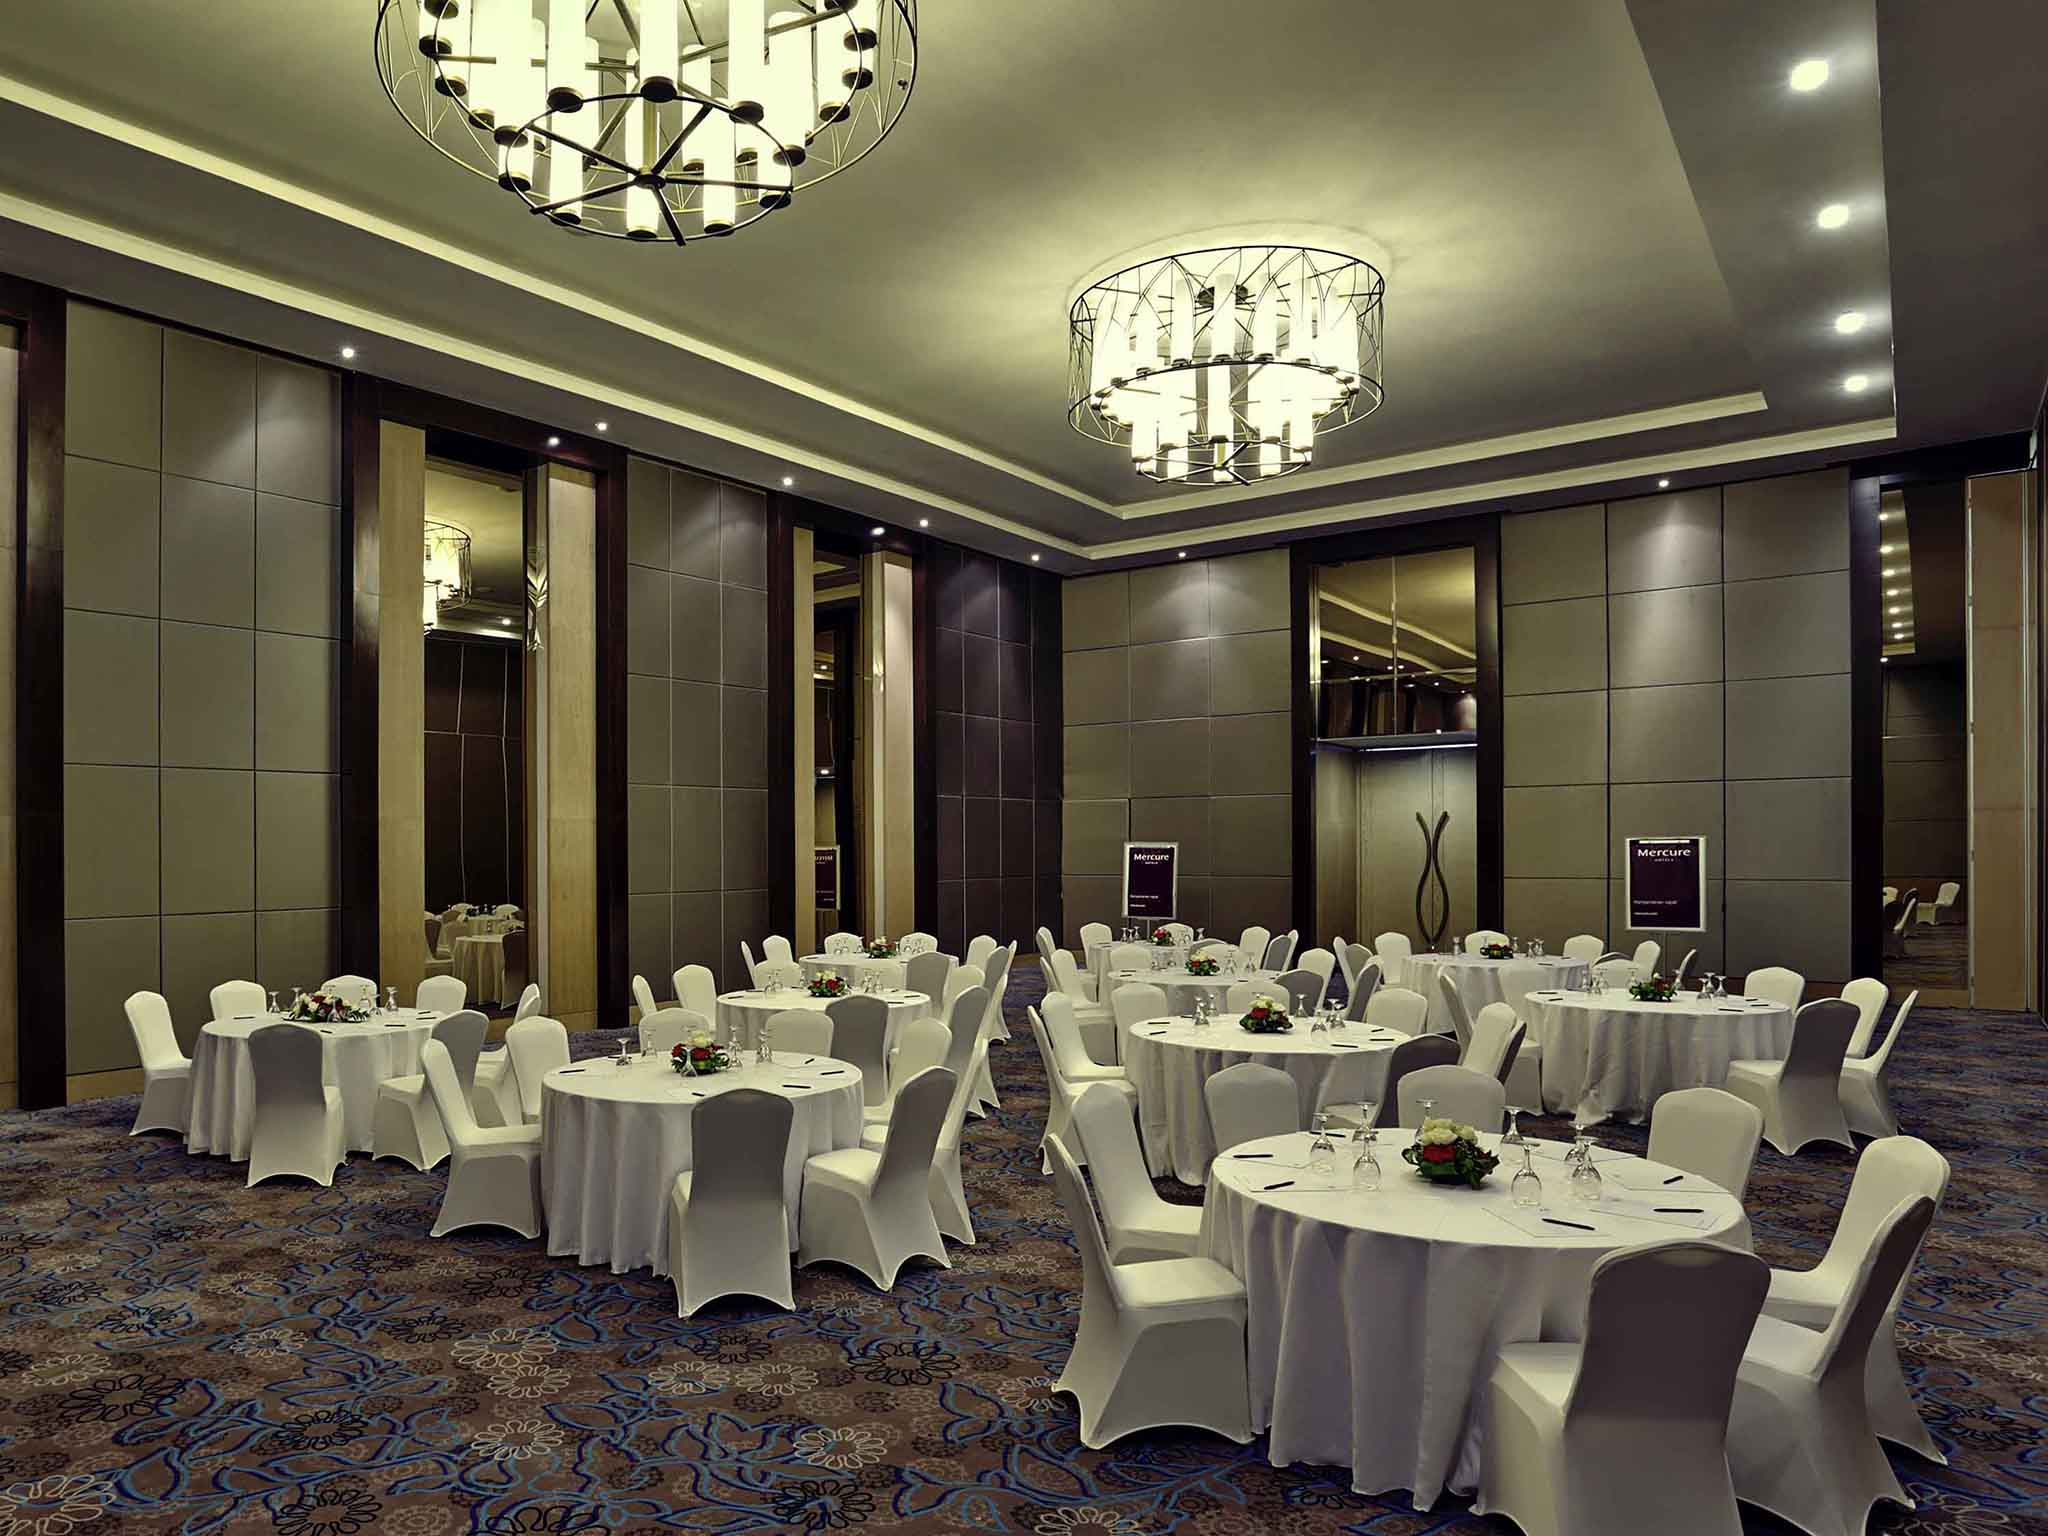 Mercure serpong alam sutera 4 star international hotel meetings and events mercure serpong alam sutera junglespirit Choice Image